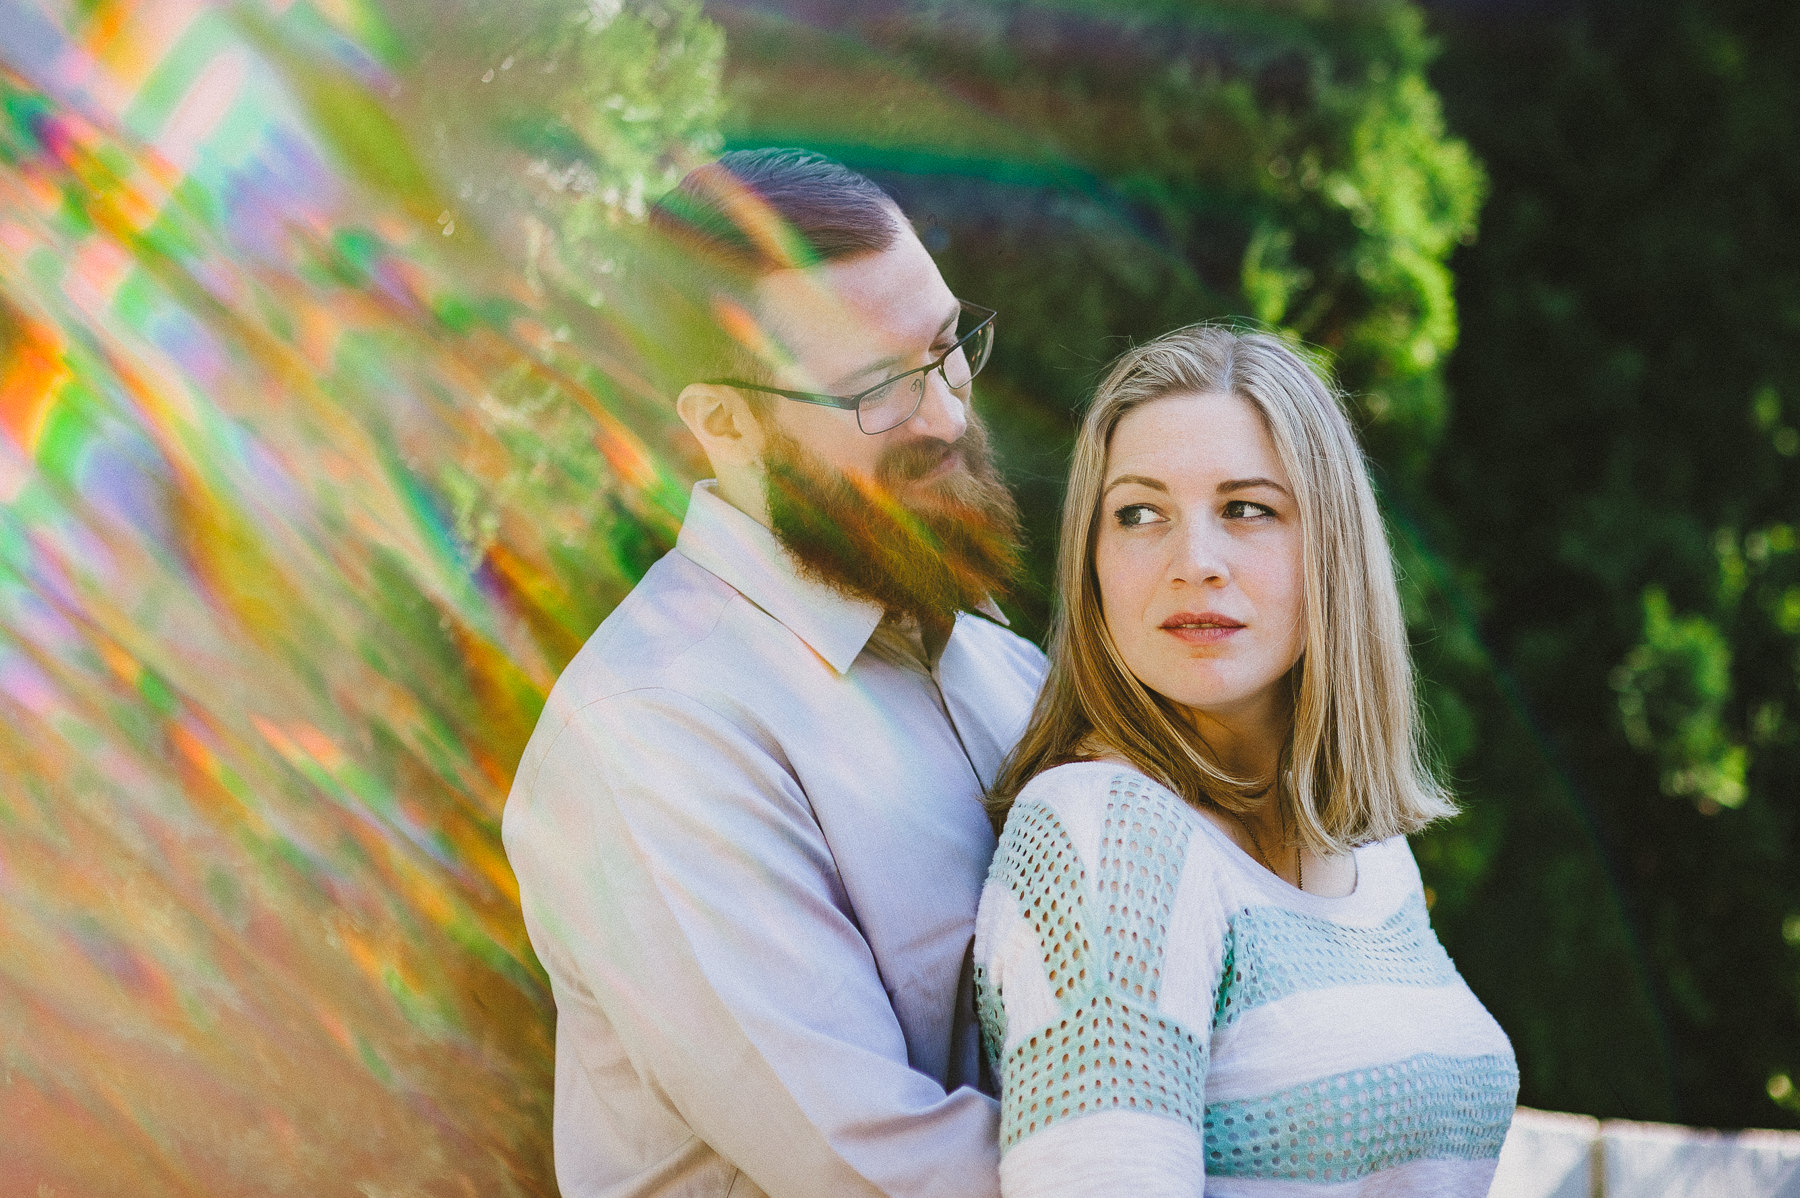 breighton-and-basette-photography-copyrighted-image-blog-kirsten-and-ryan-engagement-007.jpg